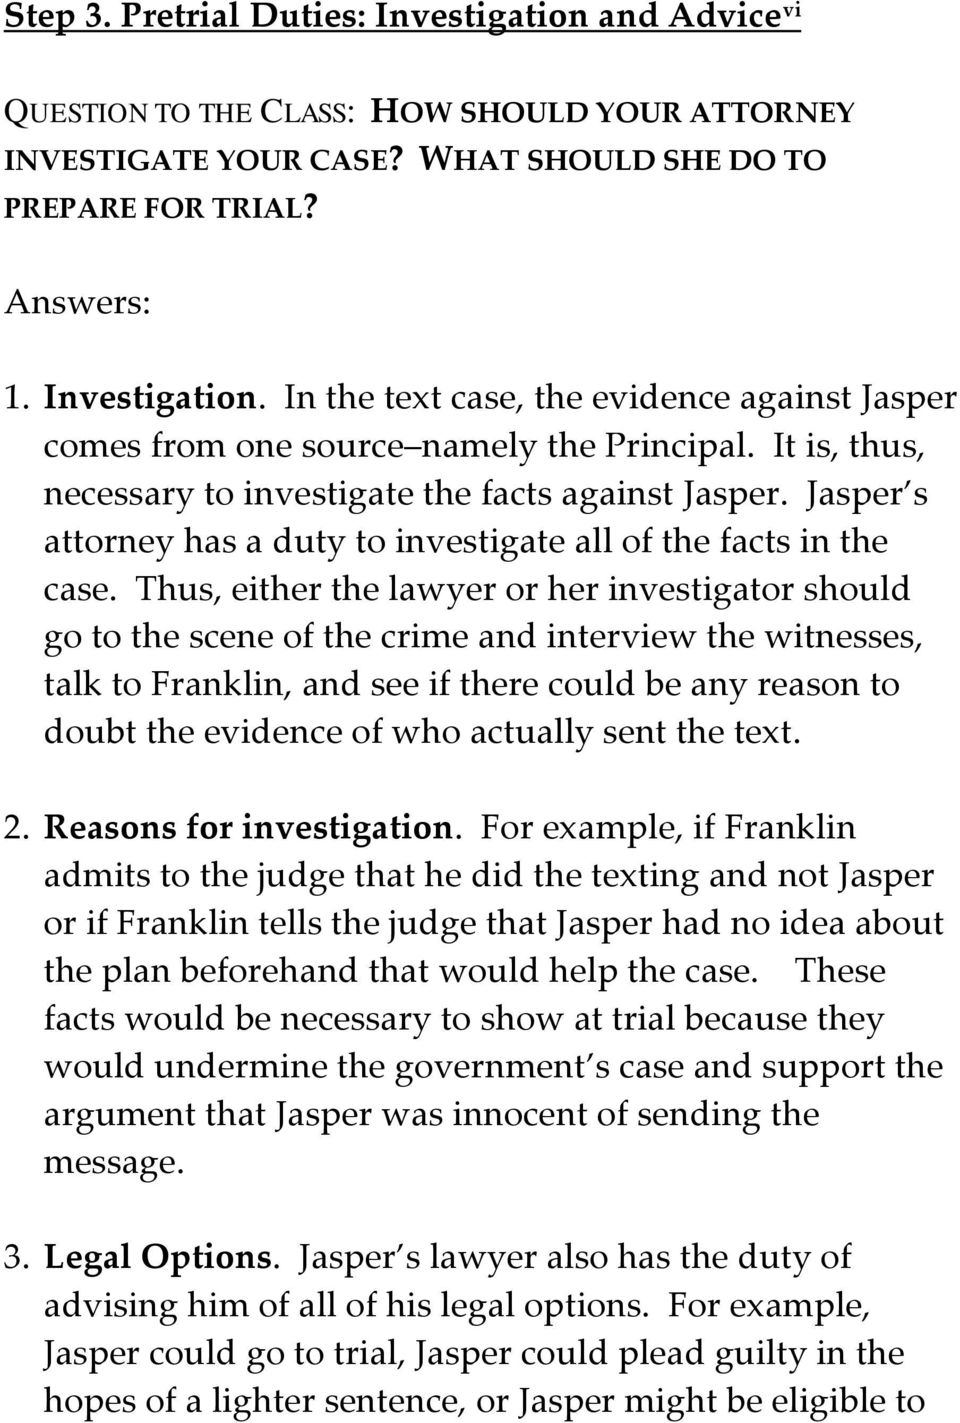 Thus, either the lawyer or her investigator should go to the scene of the crime and interview the witnesses, talk to Franklin, and see if there could be any reason to doubt the evidence of who